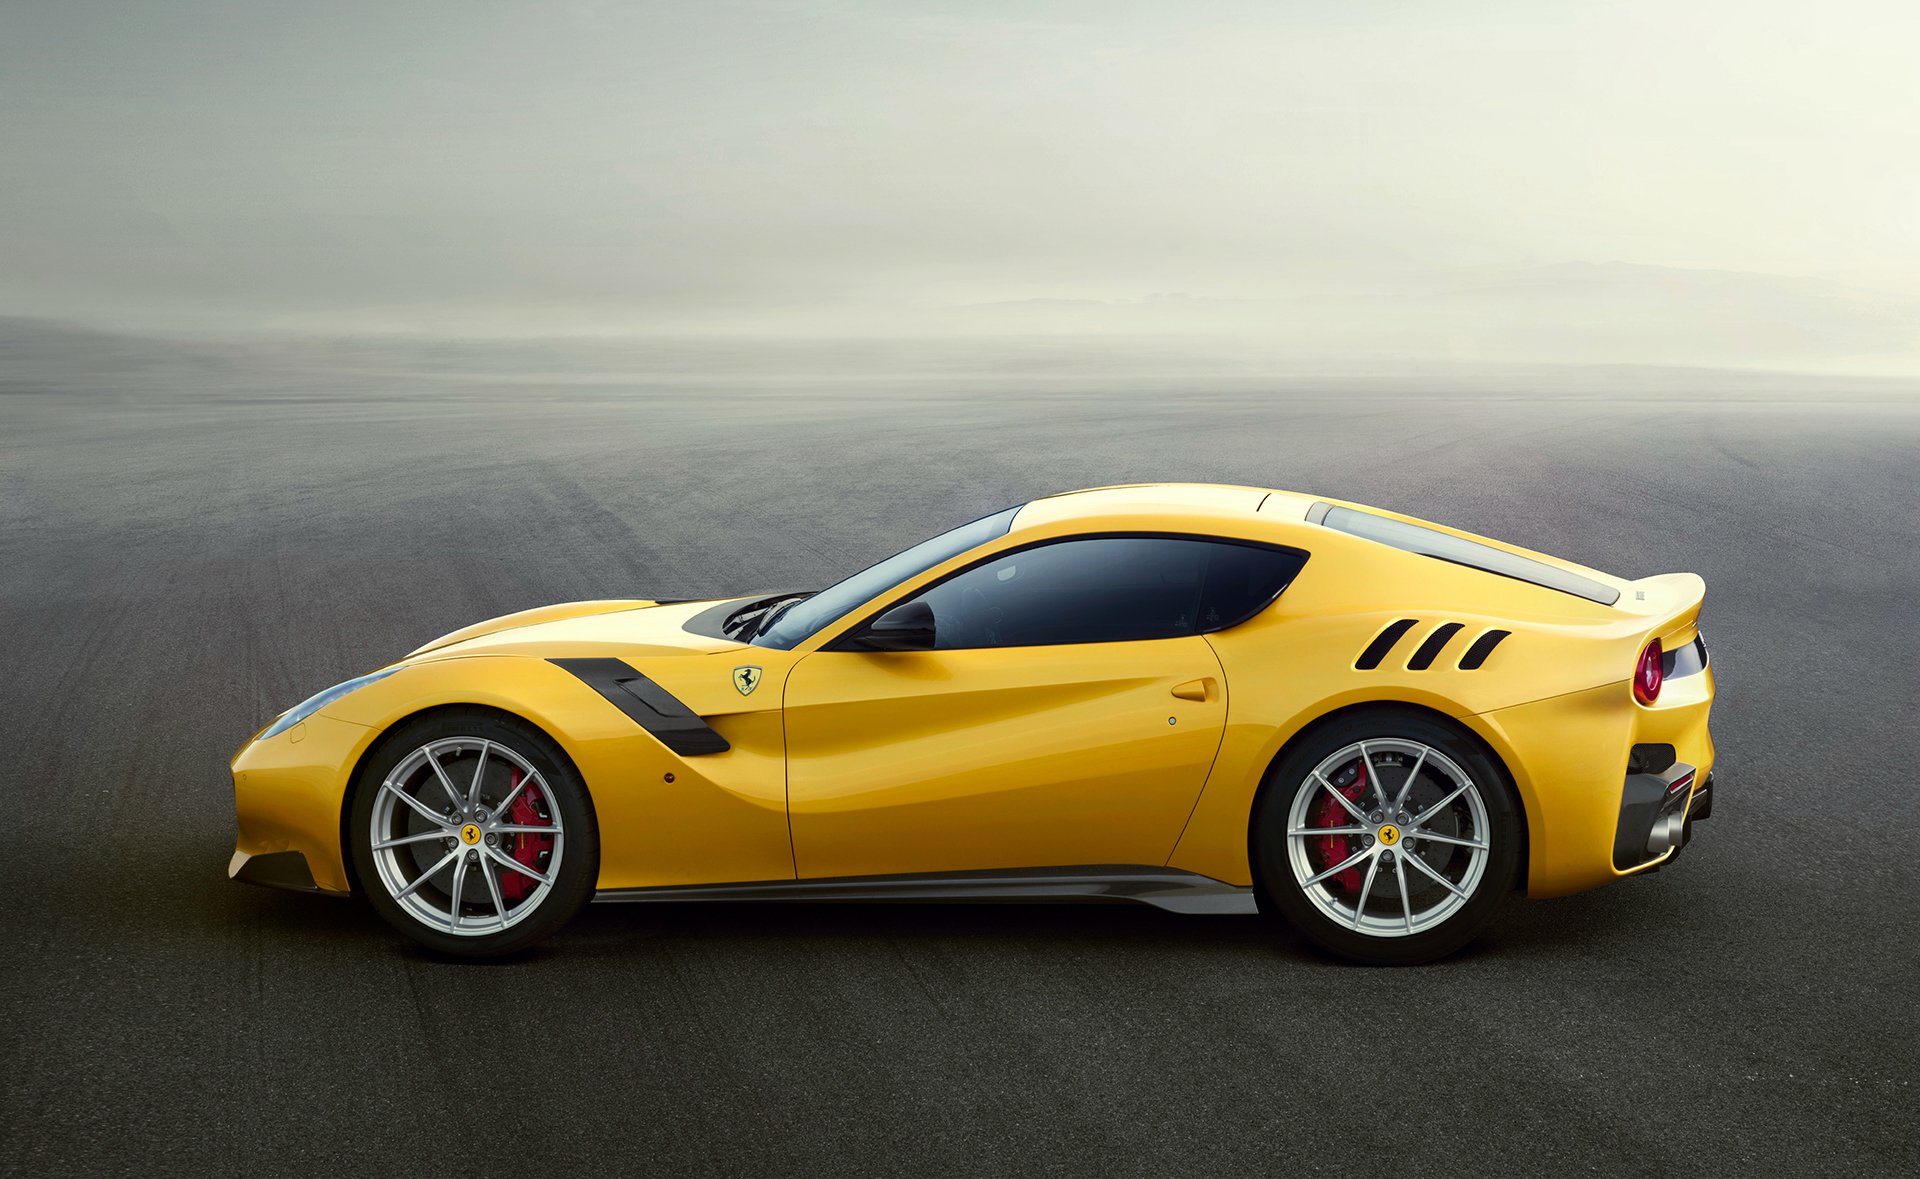 Ferrari F12tdf - profil / side-face